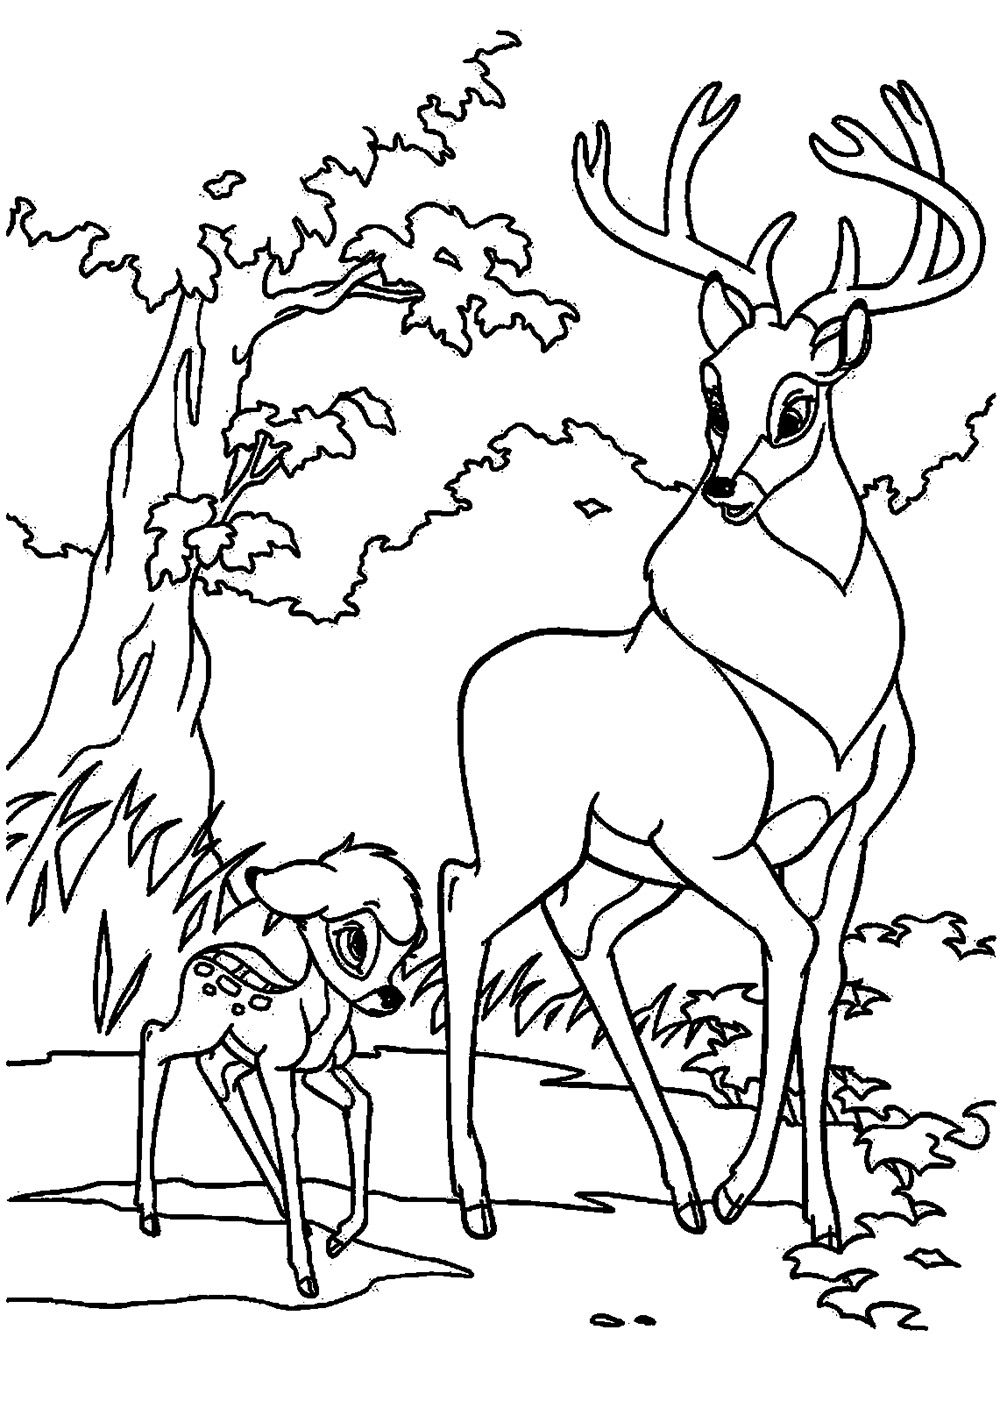 Bambi Uns Both With The Great Prince Of Forest